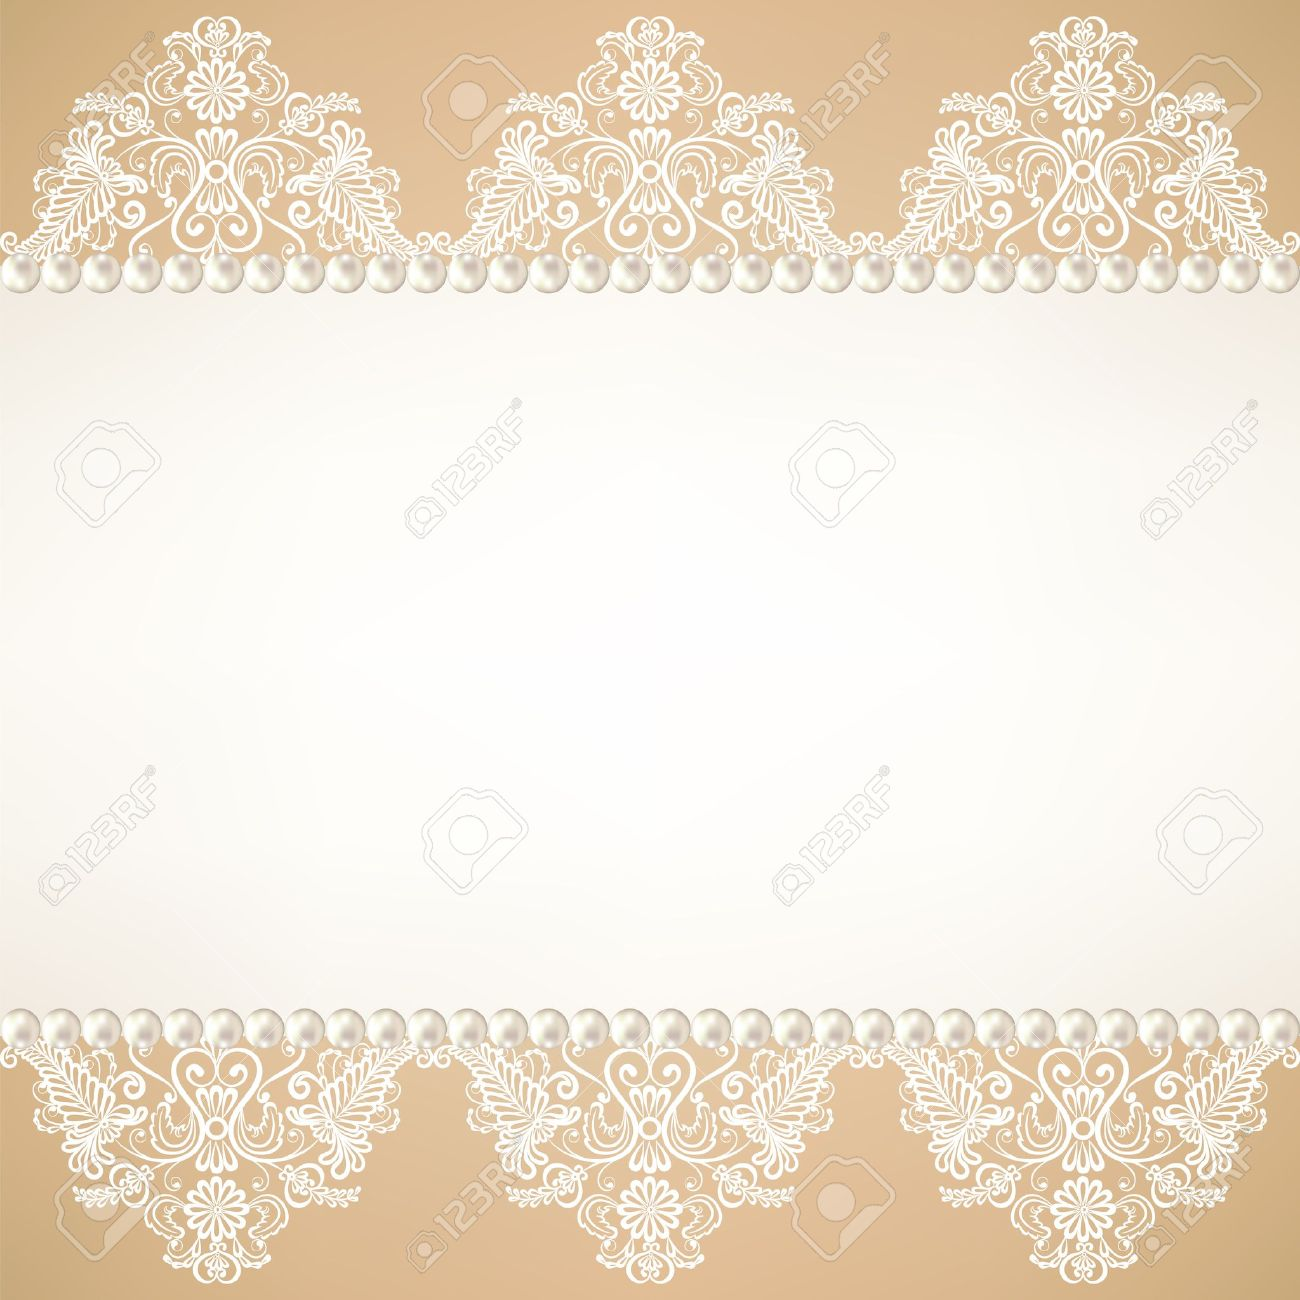 Template For Wedding, Invitation Or Greeting Card With Lace Fabric  Background With Pearls Stock Vector